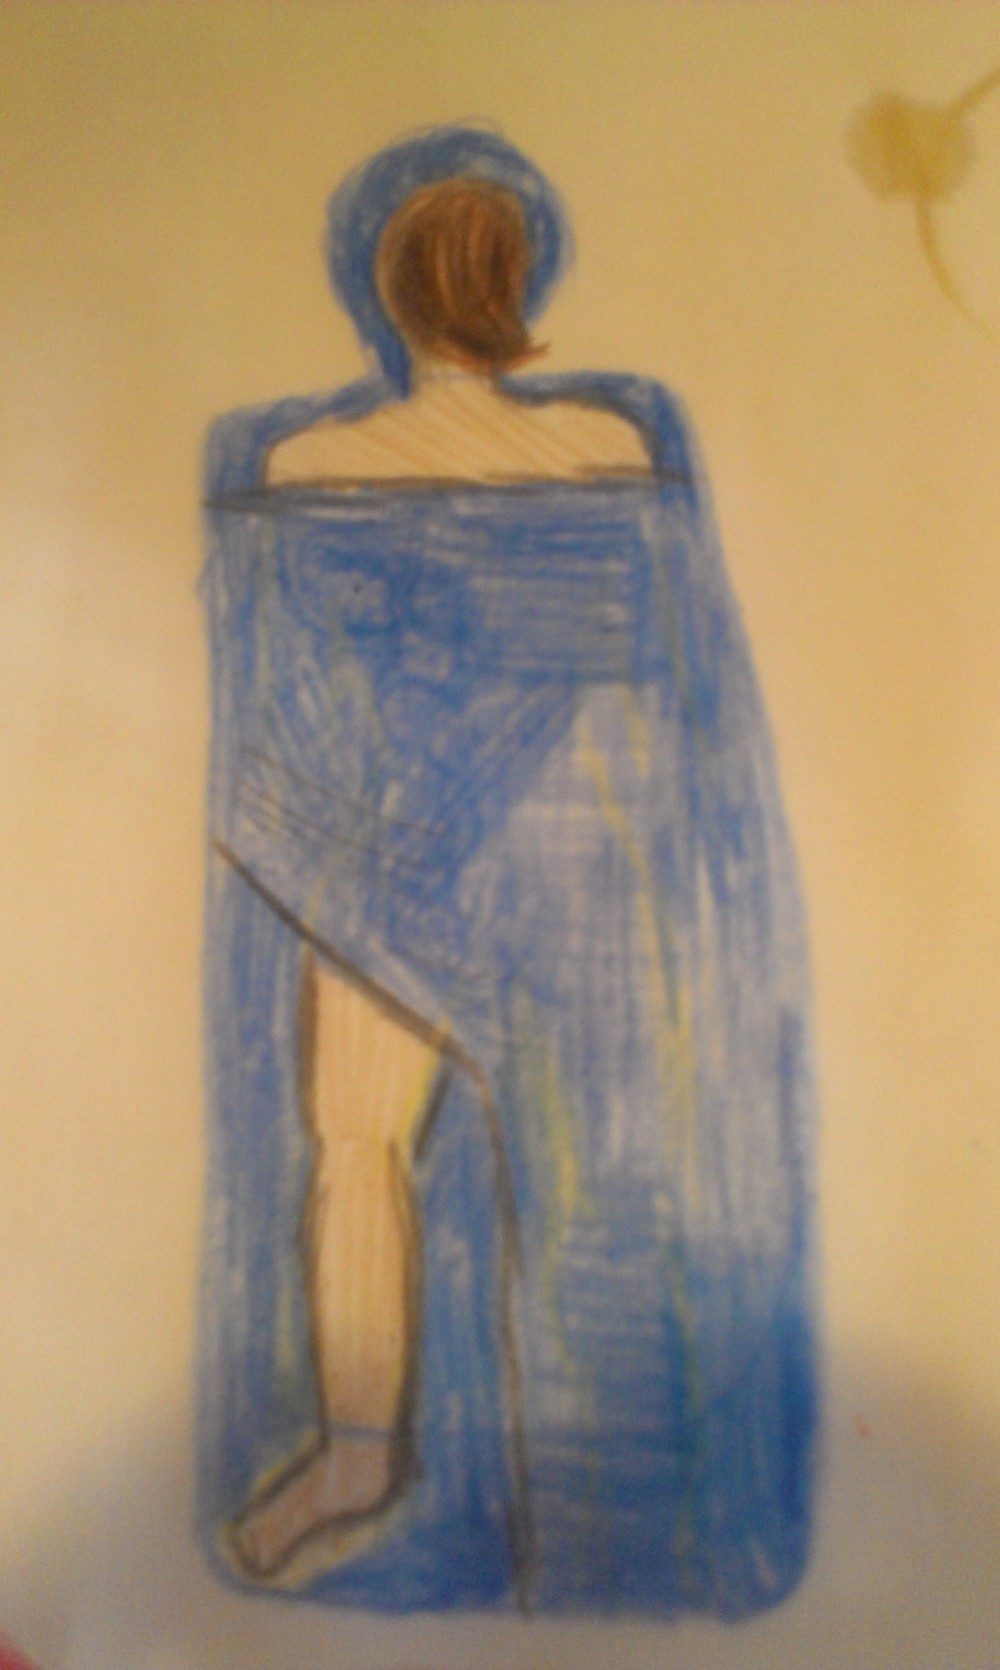 this is what leg draping looks like, when it is drawn in crayon at a coffeeshop. Note the coffee ring in the top right corner.